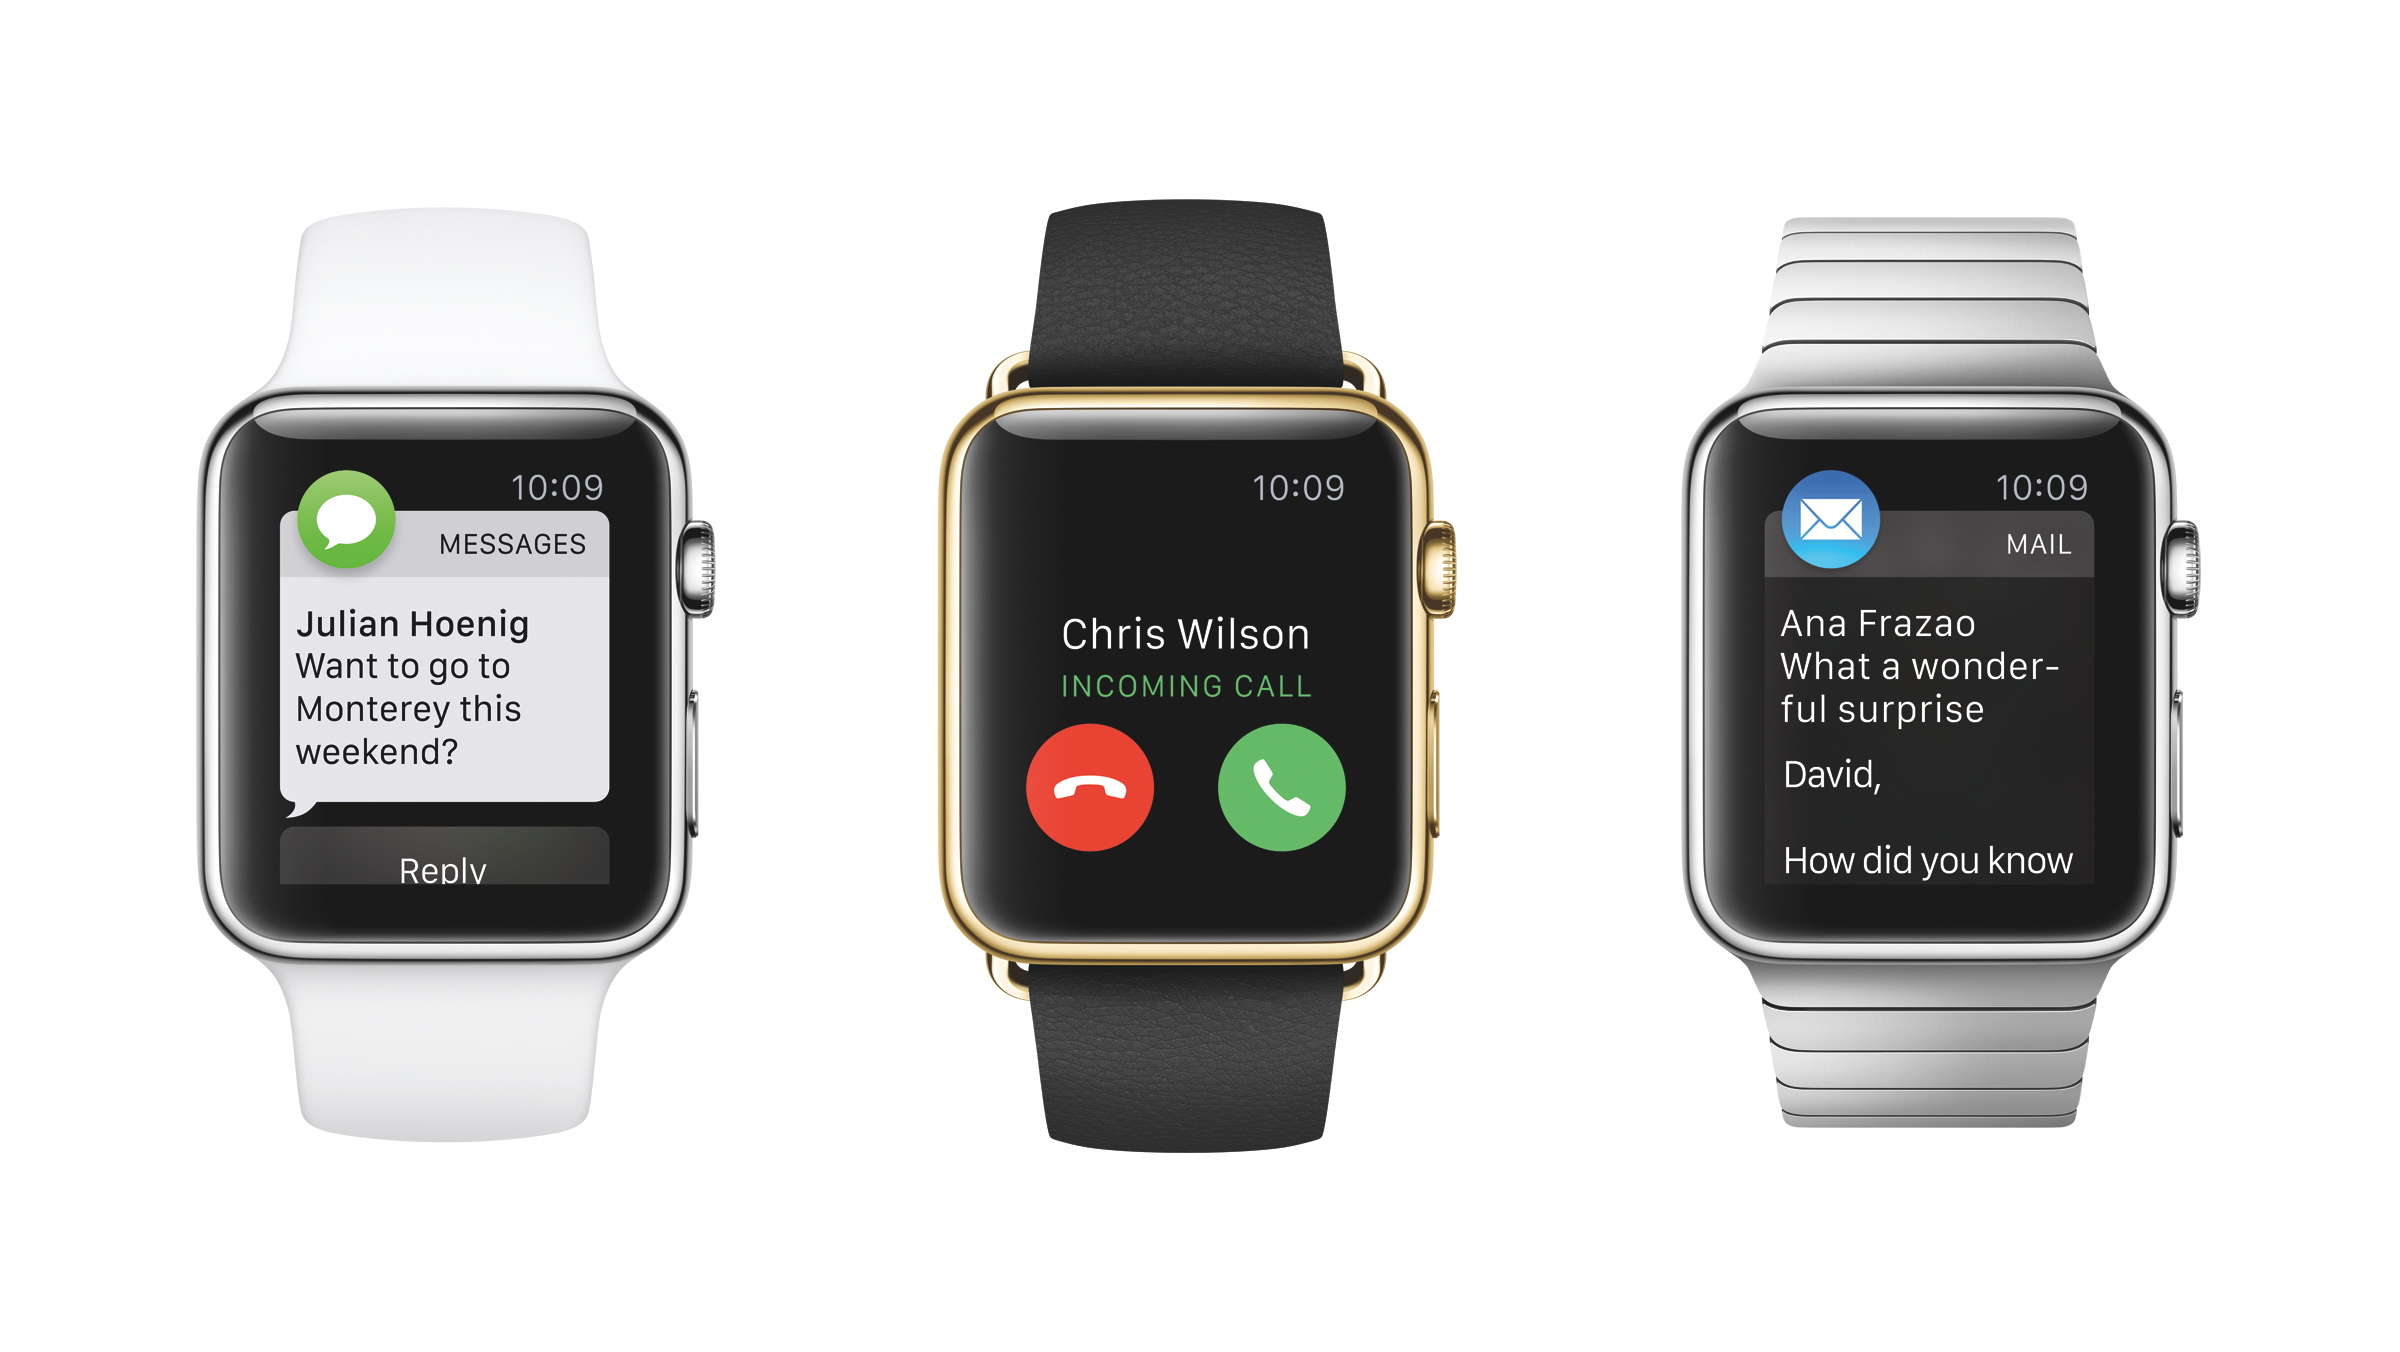 Apple Watch Iphone Compatibility